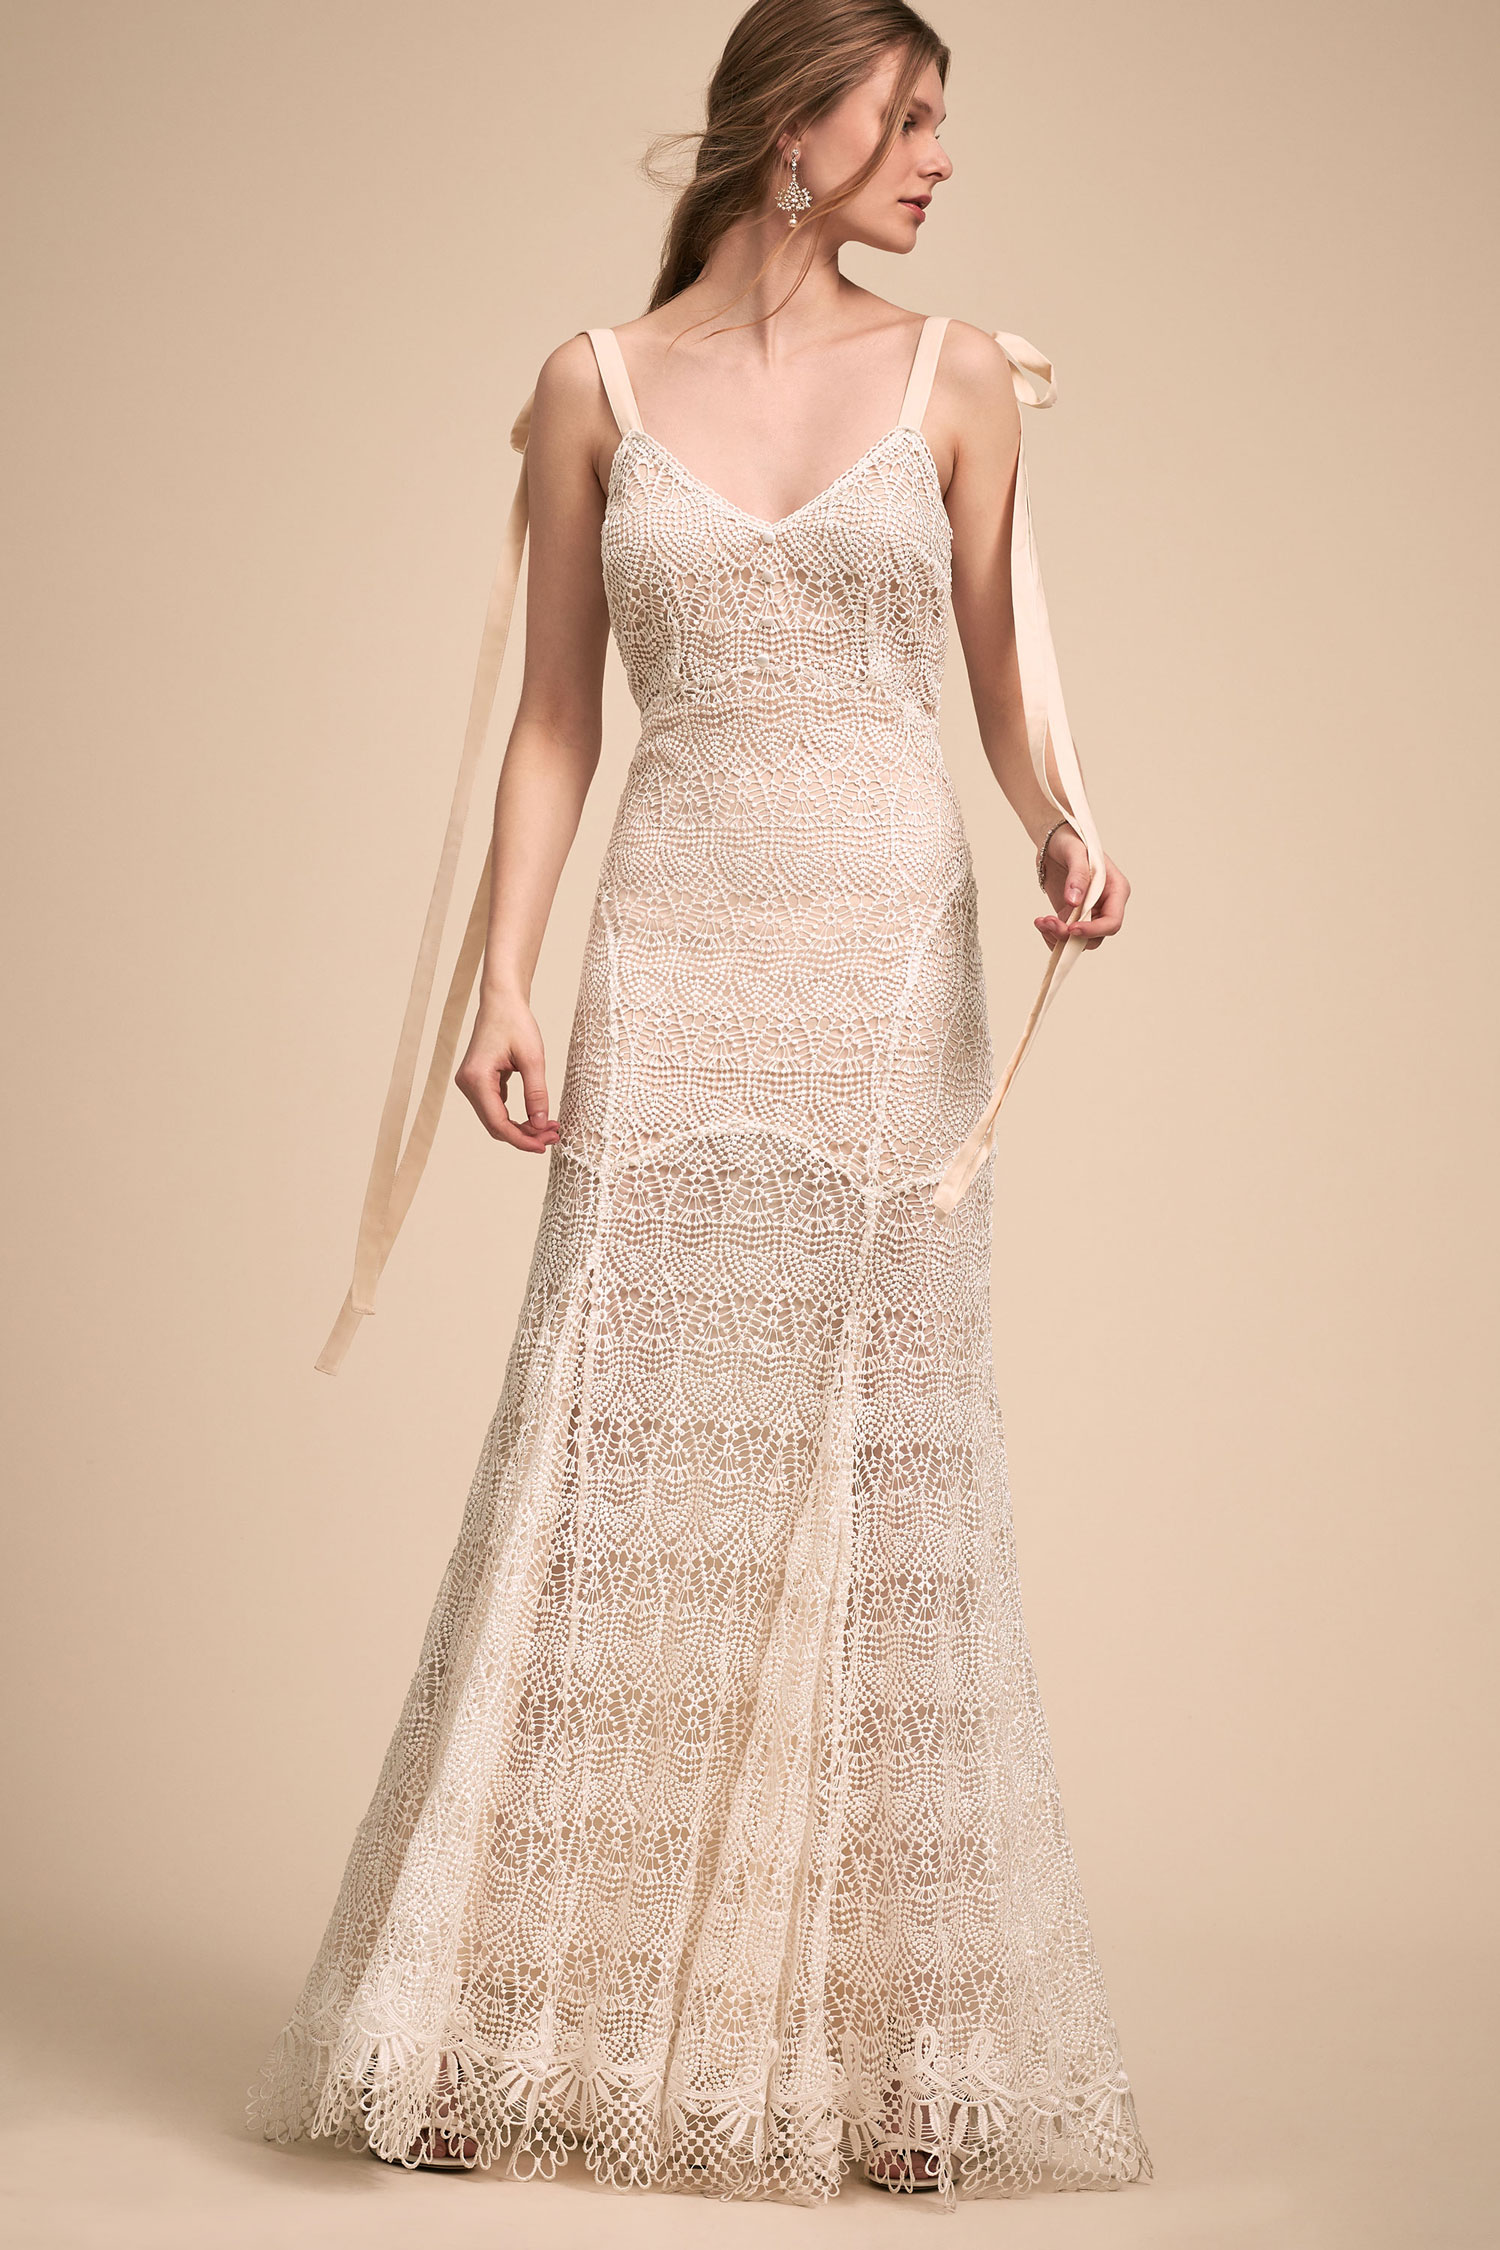 BHLDN The Designer Collective Amira by Daughters of Simone boho lace wedding dress ribbons